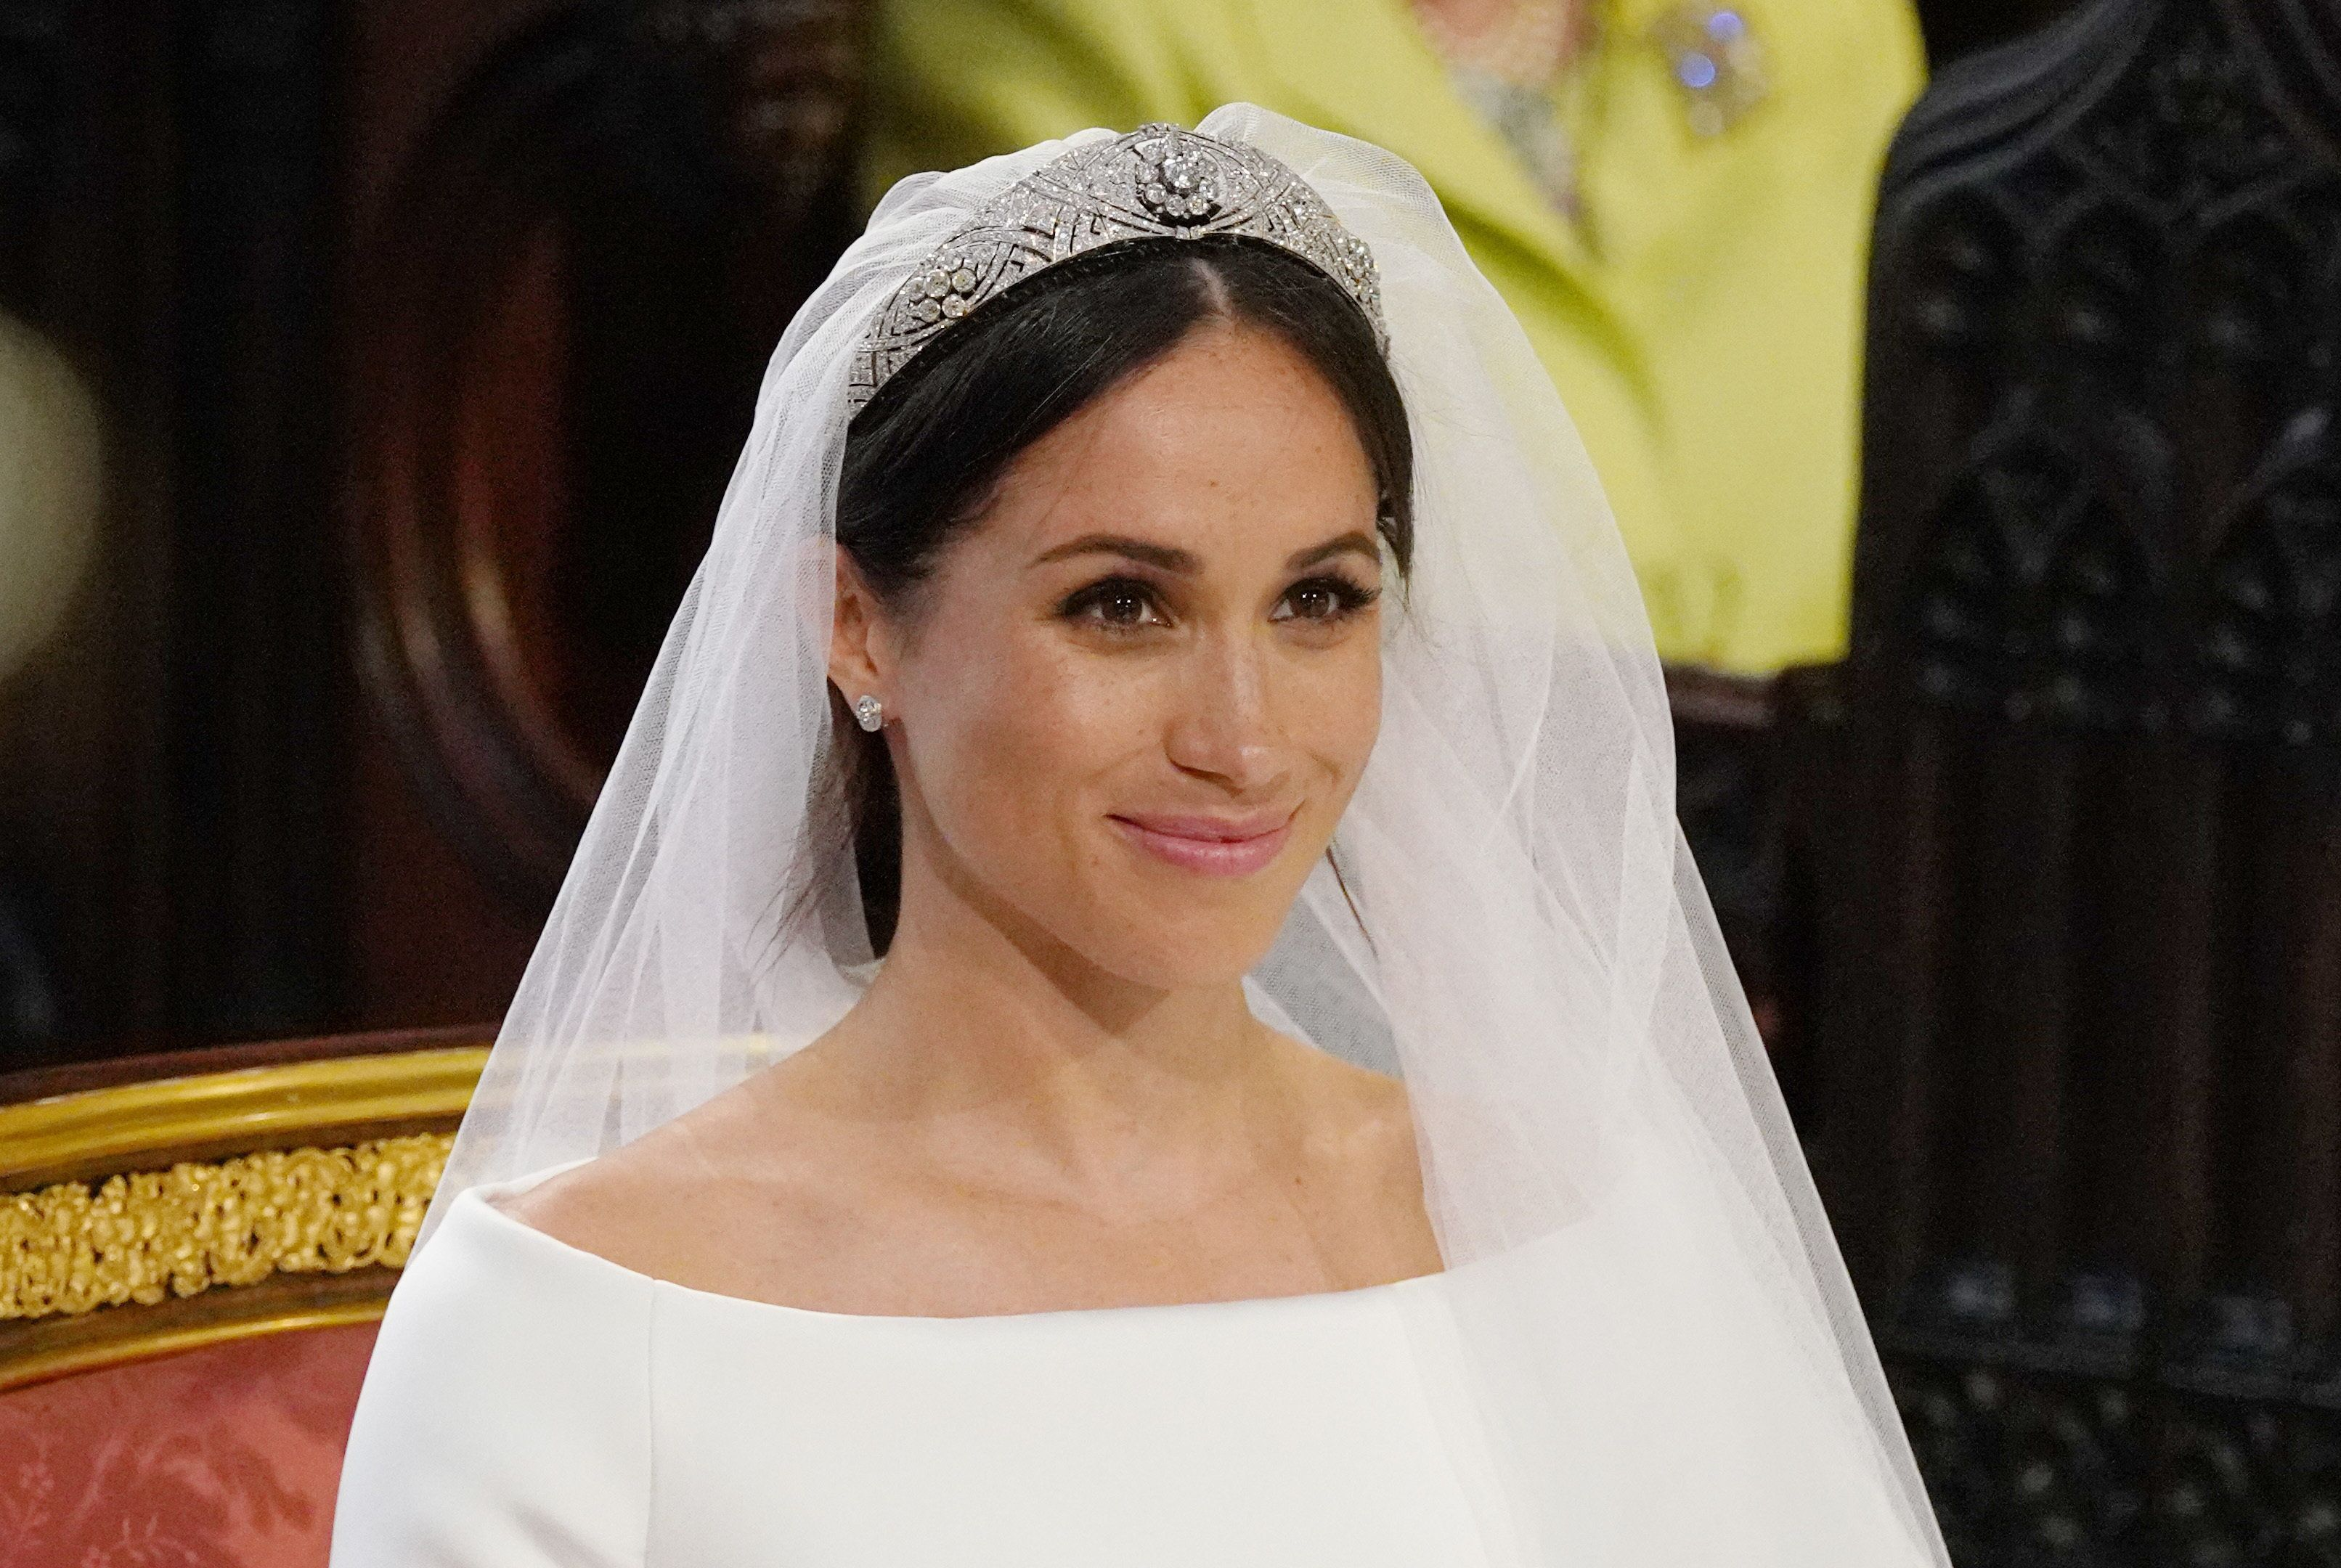 Meghan Markle in St George's Chapel, Windsor Castle for her wedding to Prince Harry.